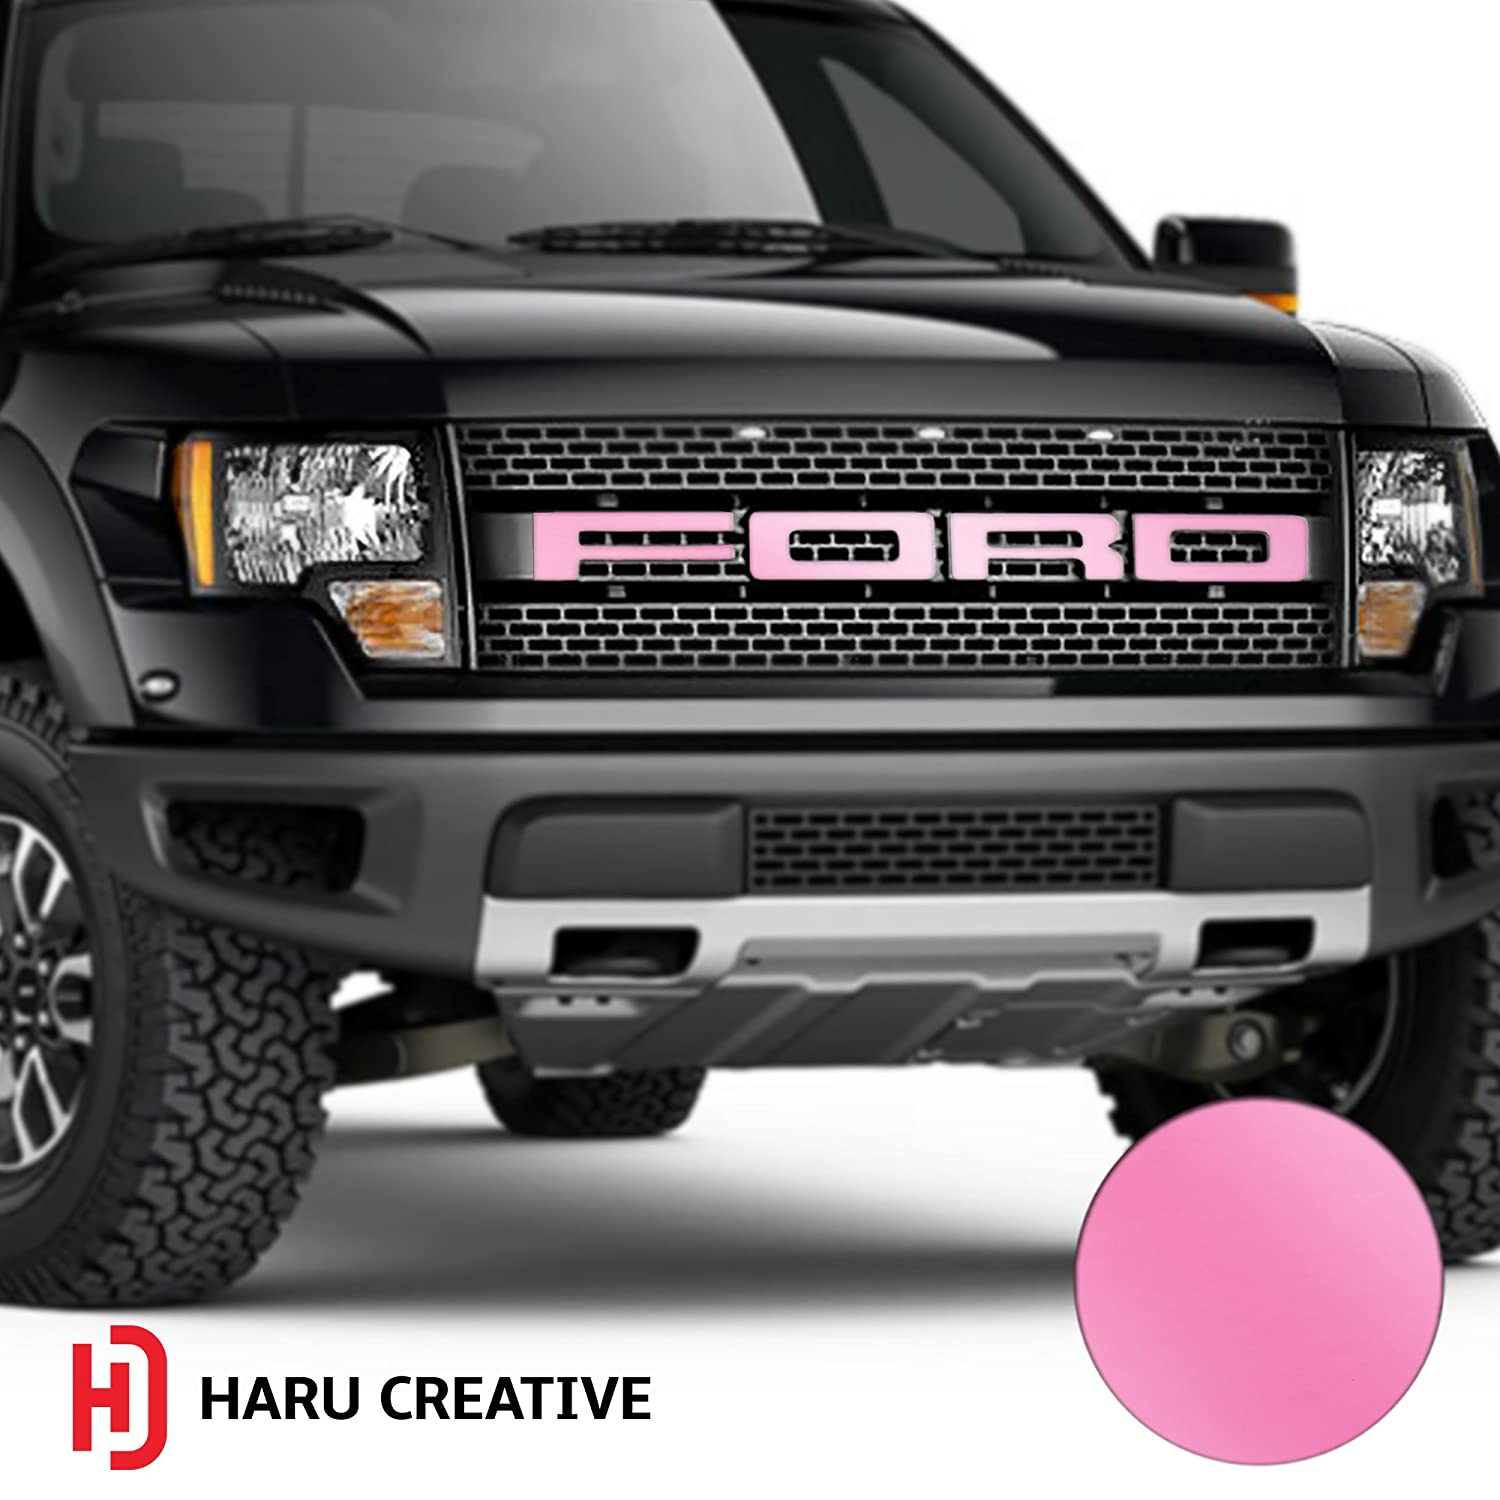 Haru Creative 2010 2011 2012 2013 2014 Hood Grille Emblem Letter Overlay Vinyl Decal Sticker Compatible Fits Ford F150 F-150 Raptor - Matte White Loyo